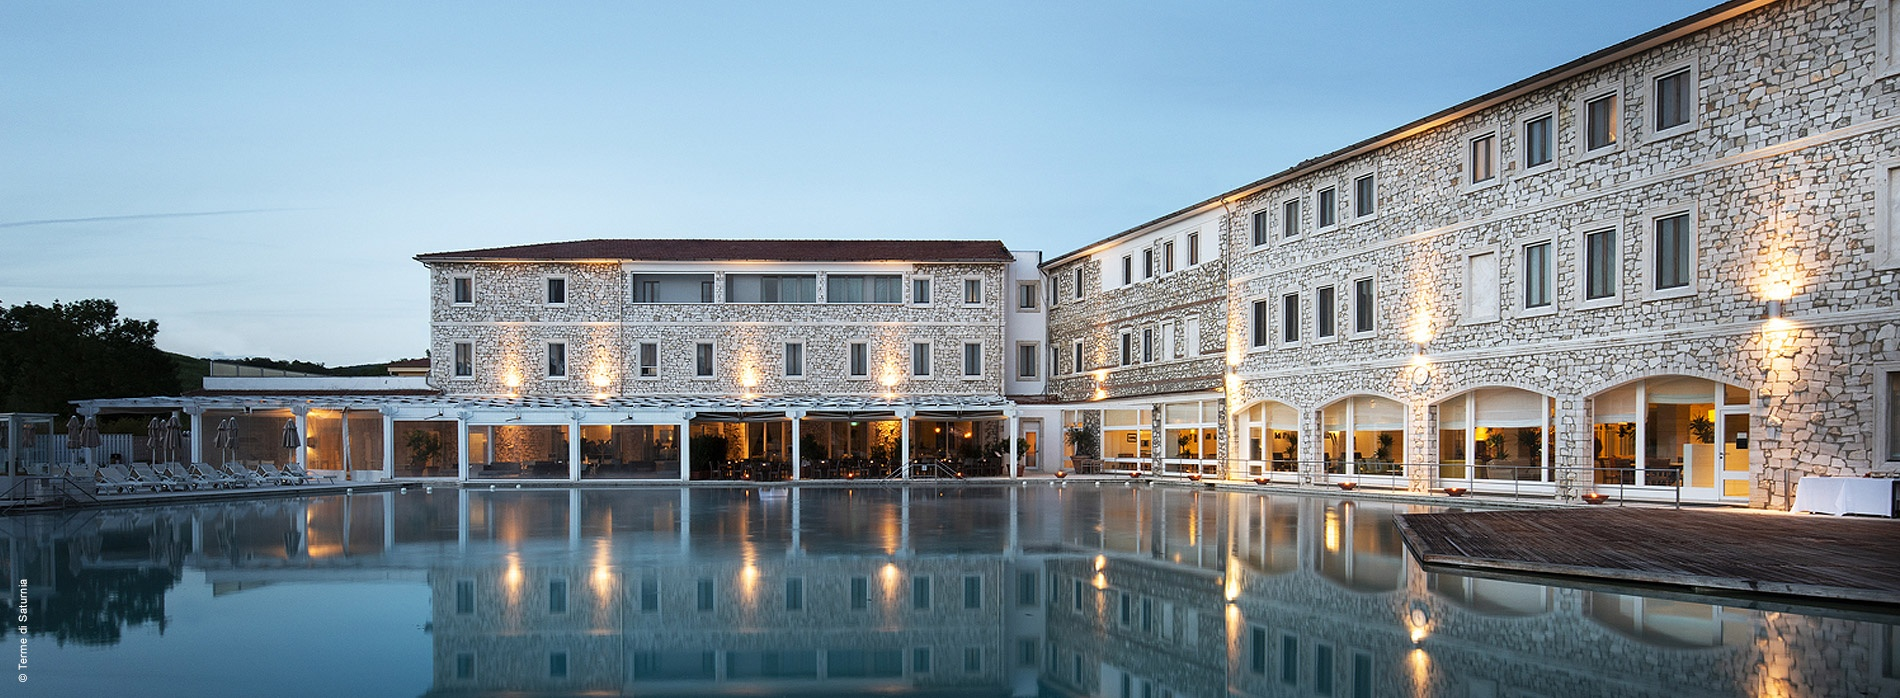 Terme di Saturnia Spa & Golf Resort, Saturnia